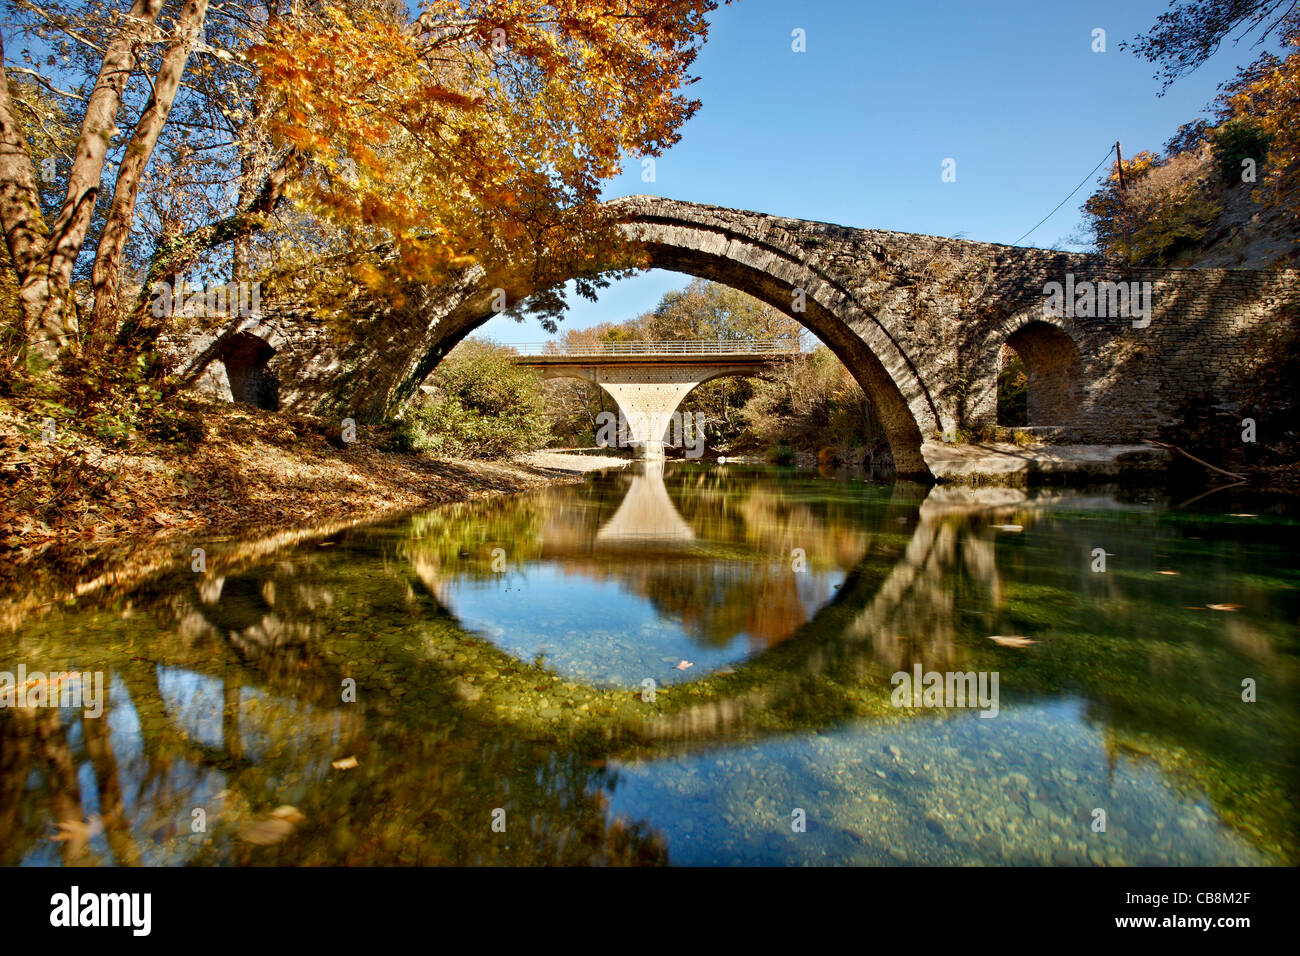 The Kaberaga (or 'Kaber Aga'), old stone bridge, close to Miliotades village, East Zagori region, Ioannina, - Stock Image